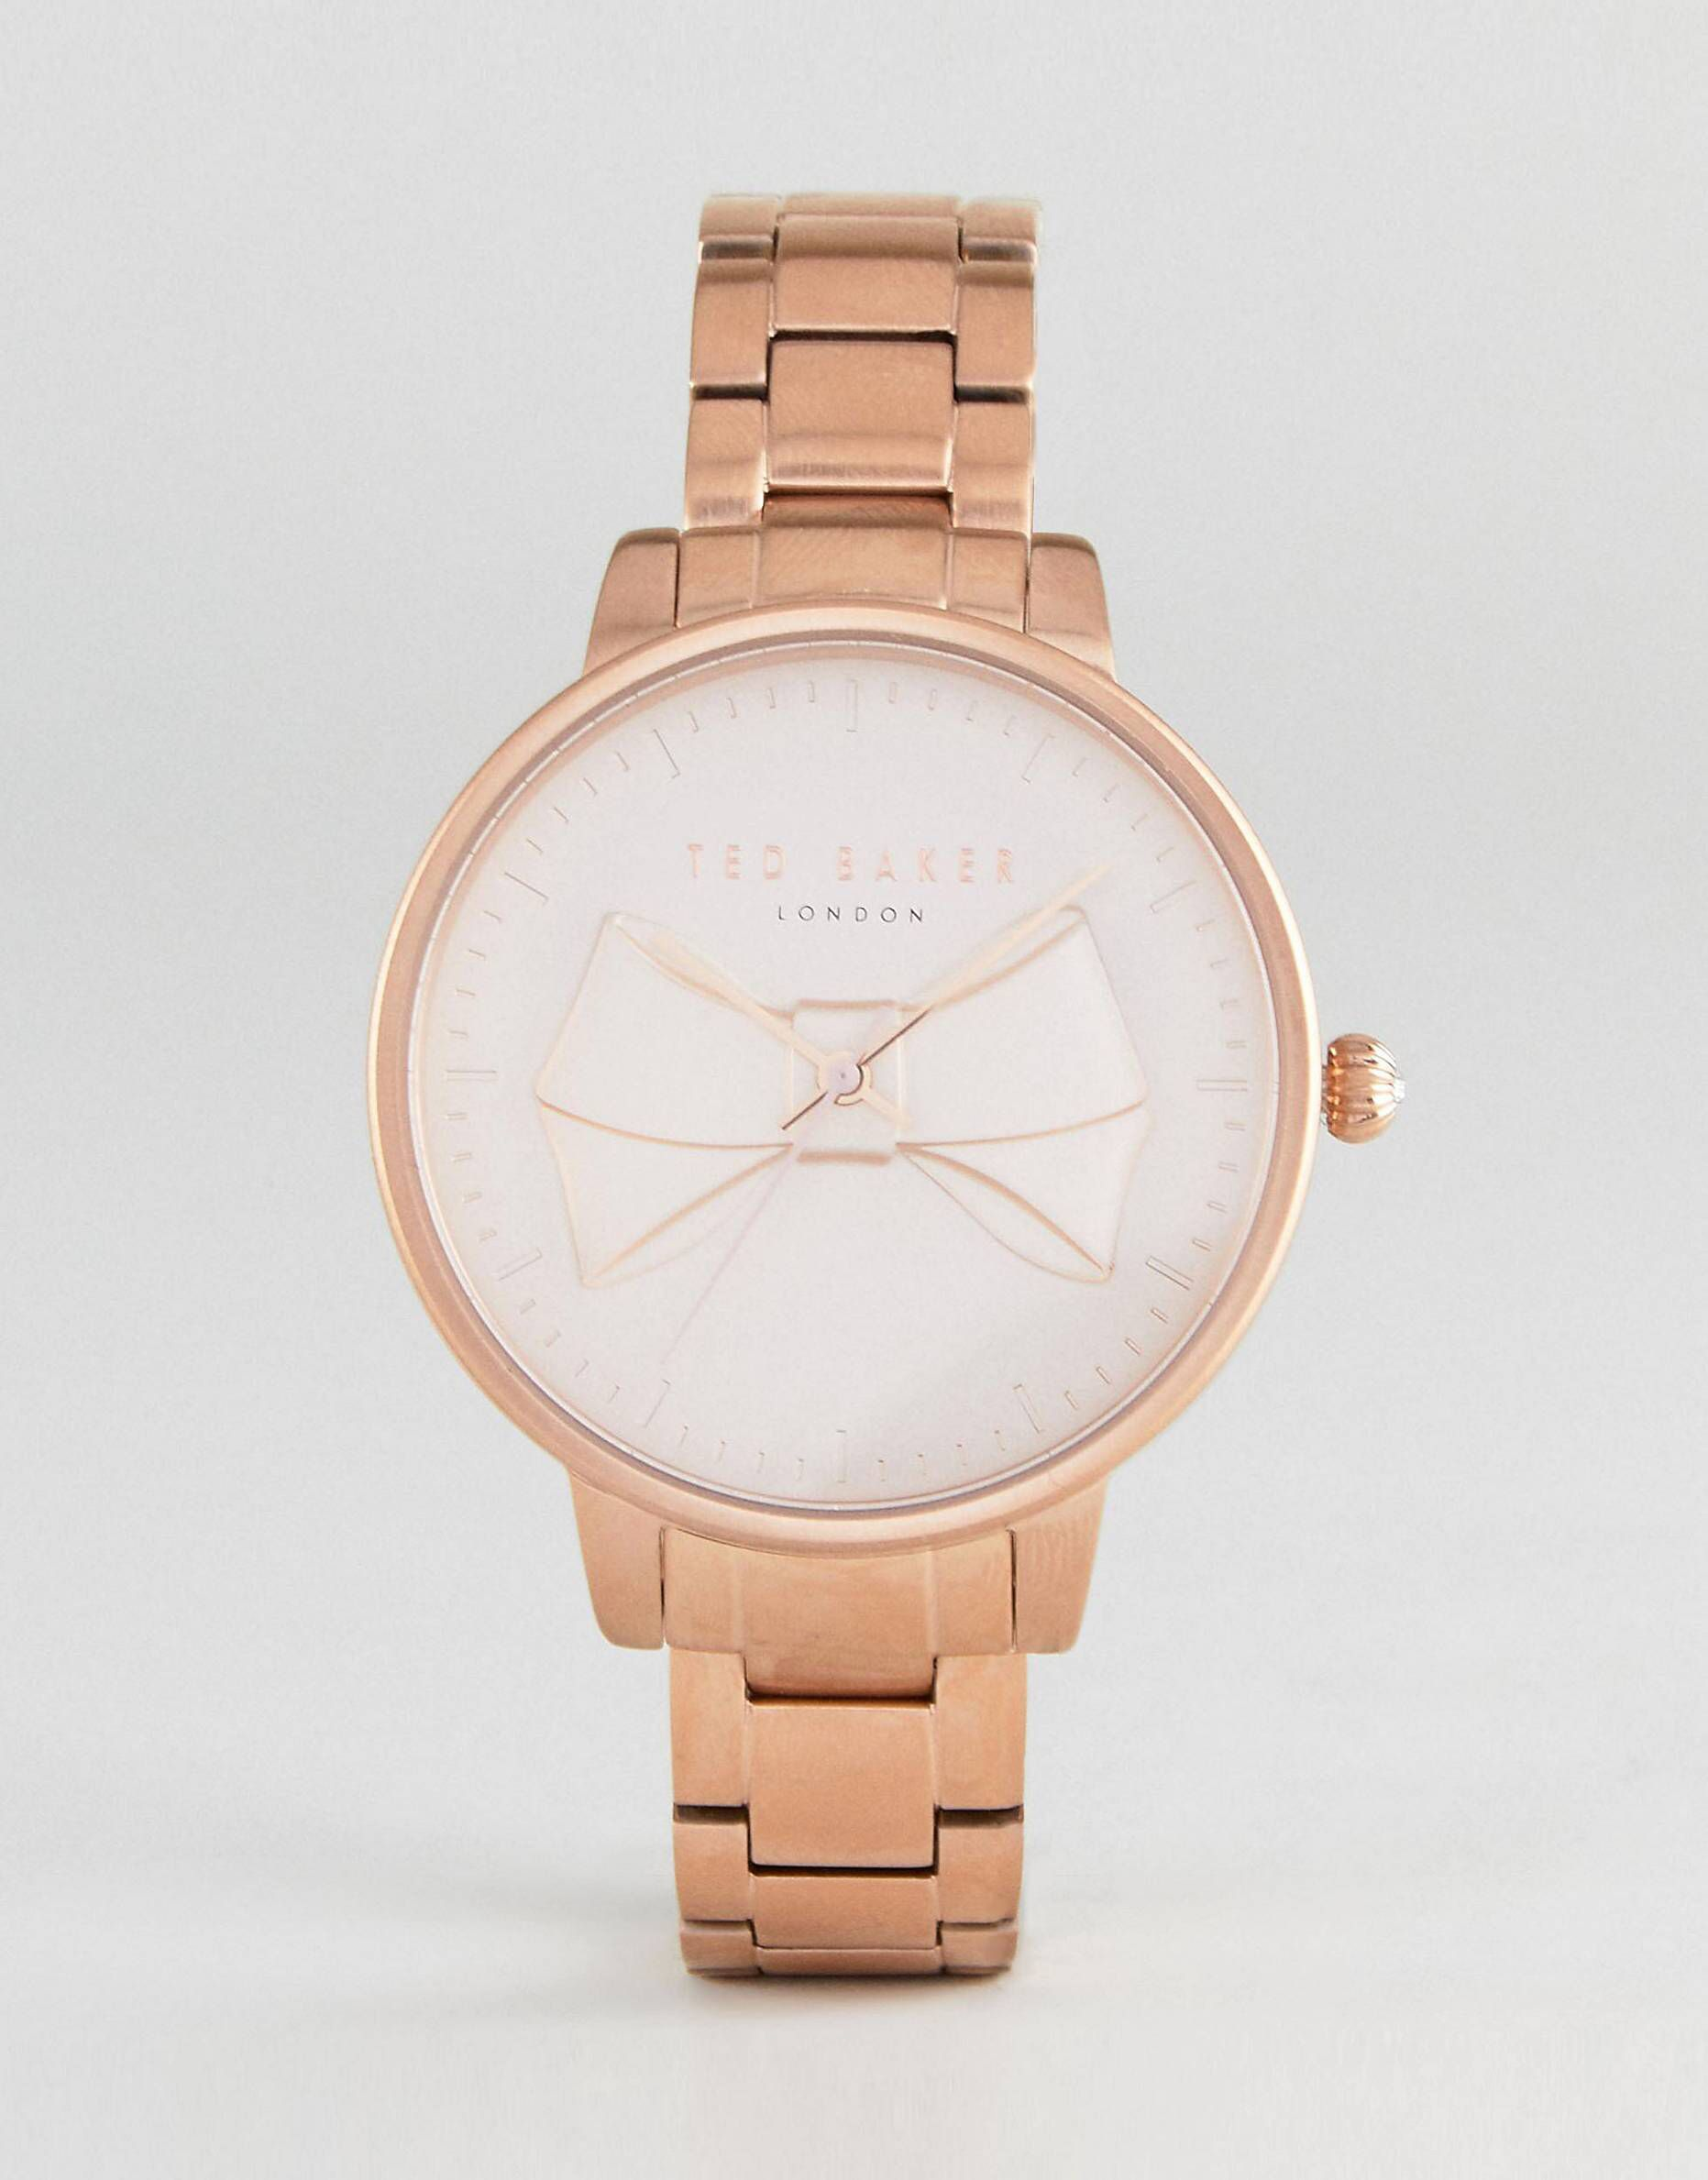 baker gold lyst watches pink tone rose watch in accessories gallery ted